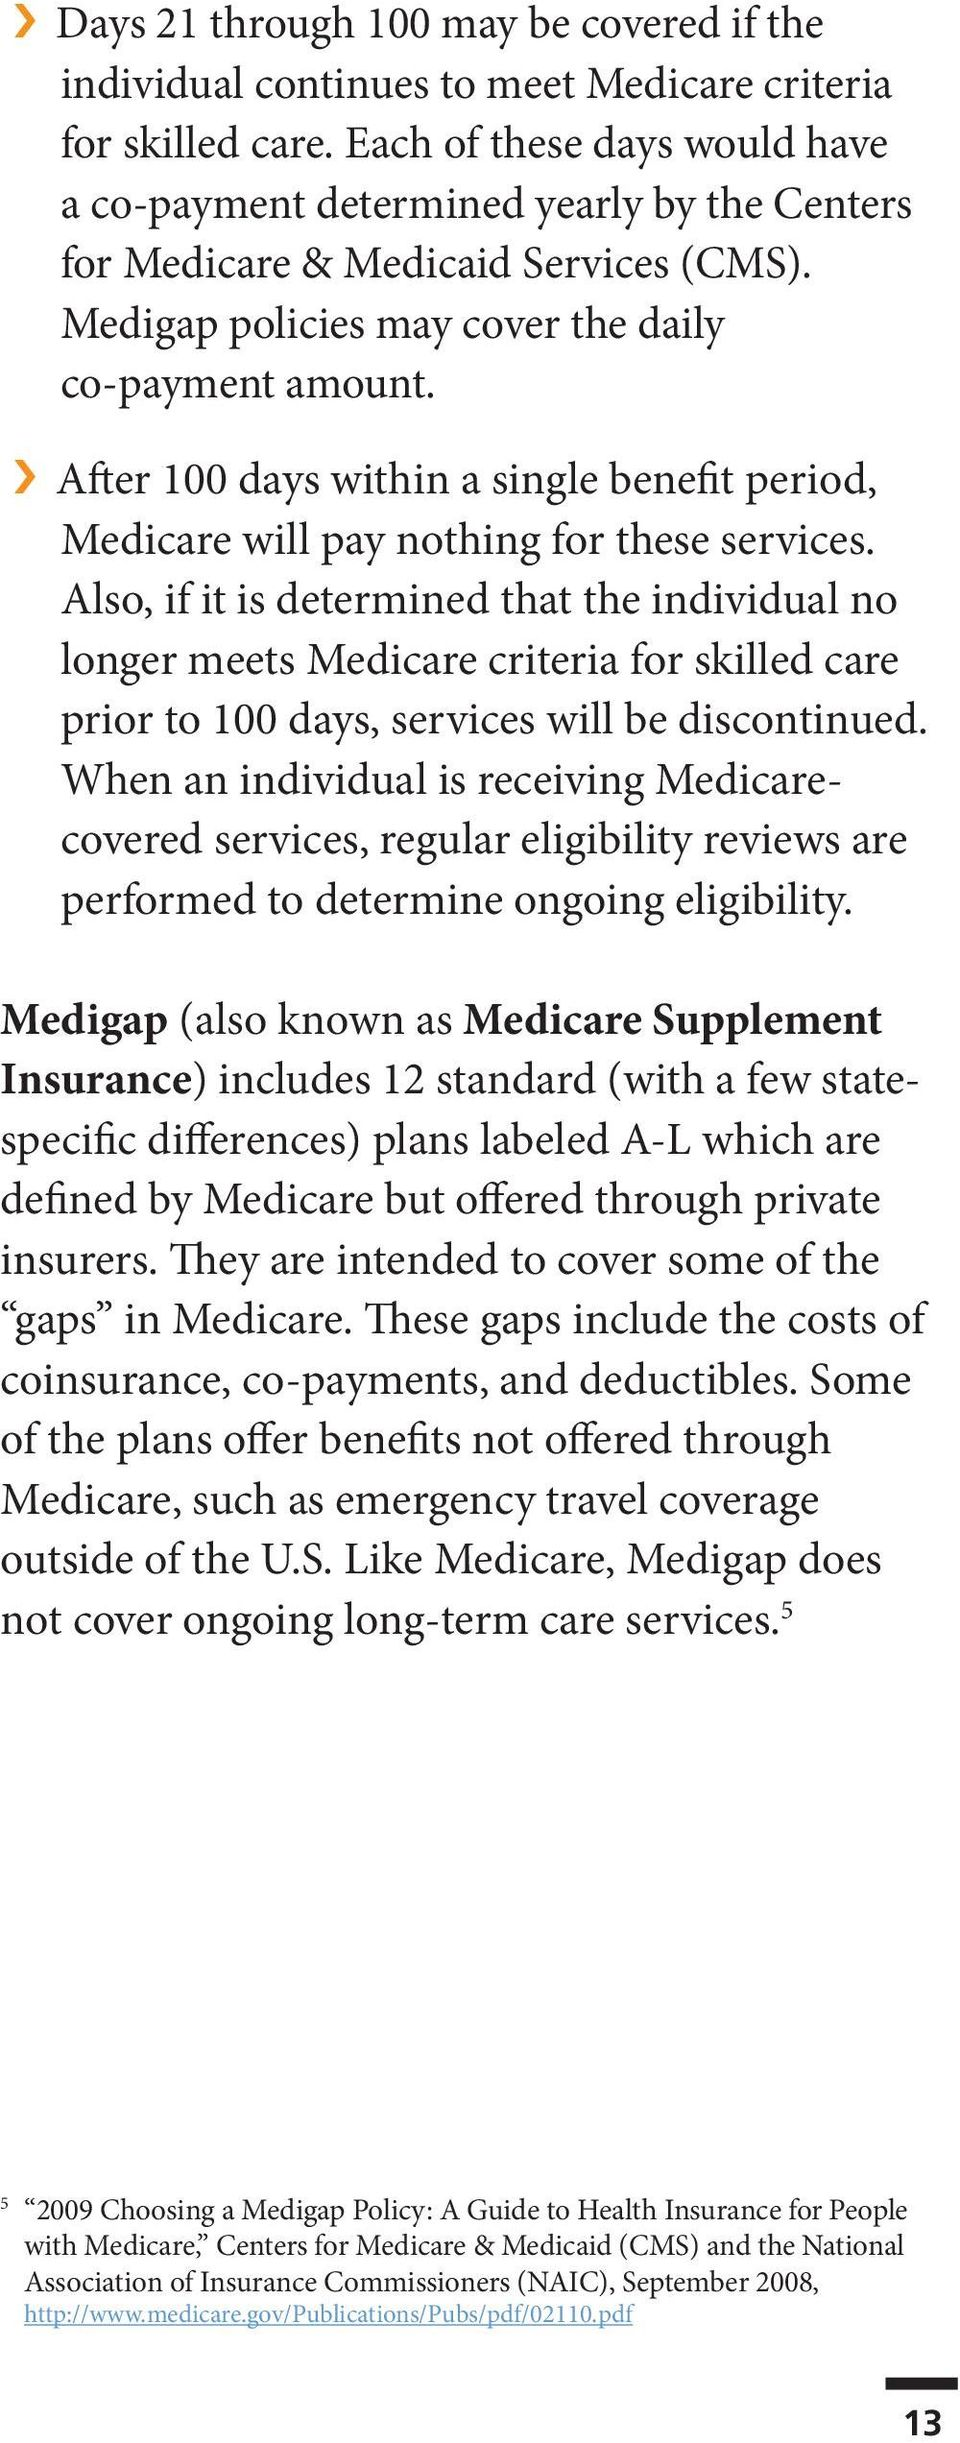 After 100 days within a single benefit period, Medicare will pay nothing for these services.